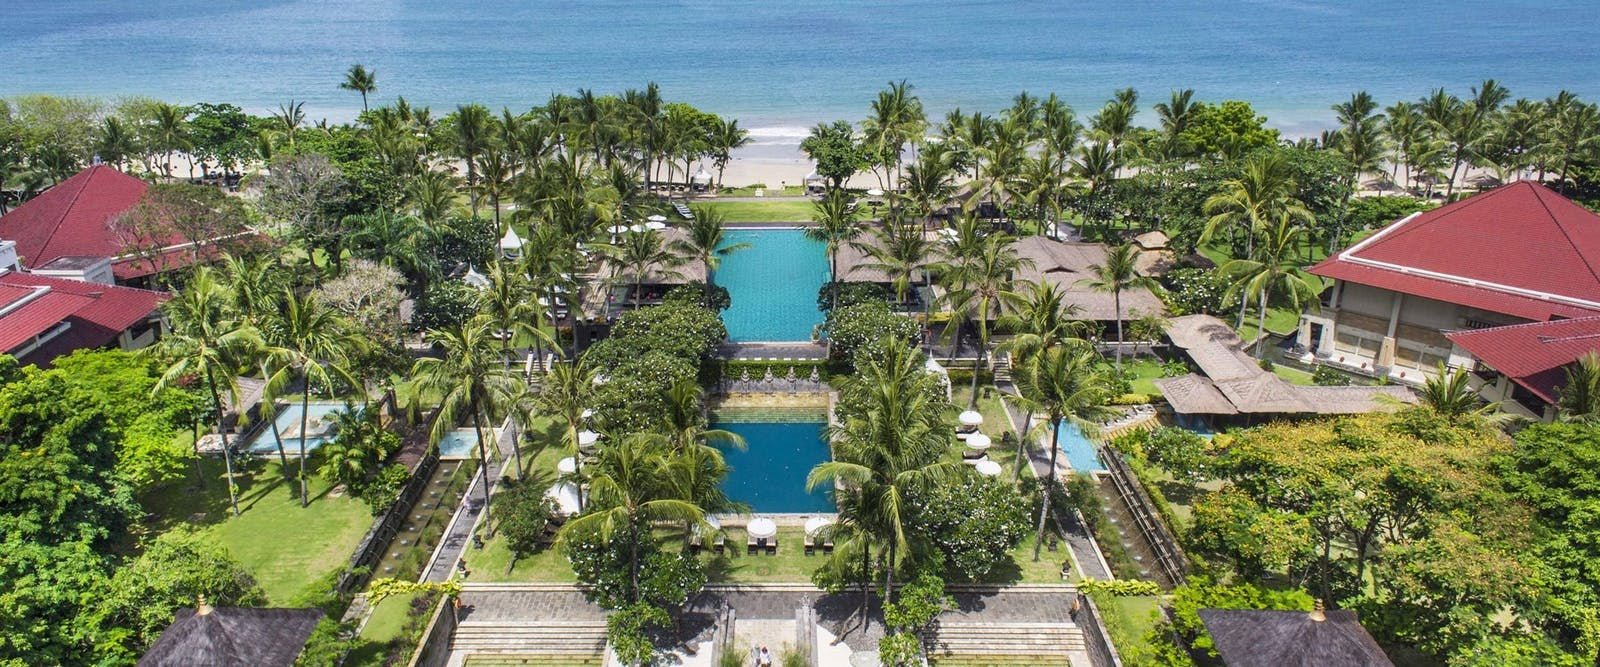 exterior of Intercontinental Bali Resort